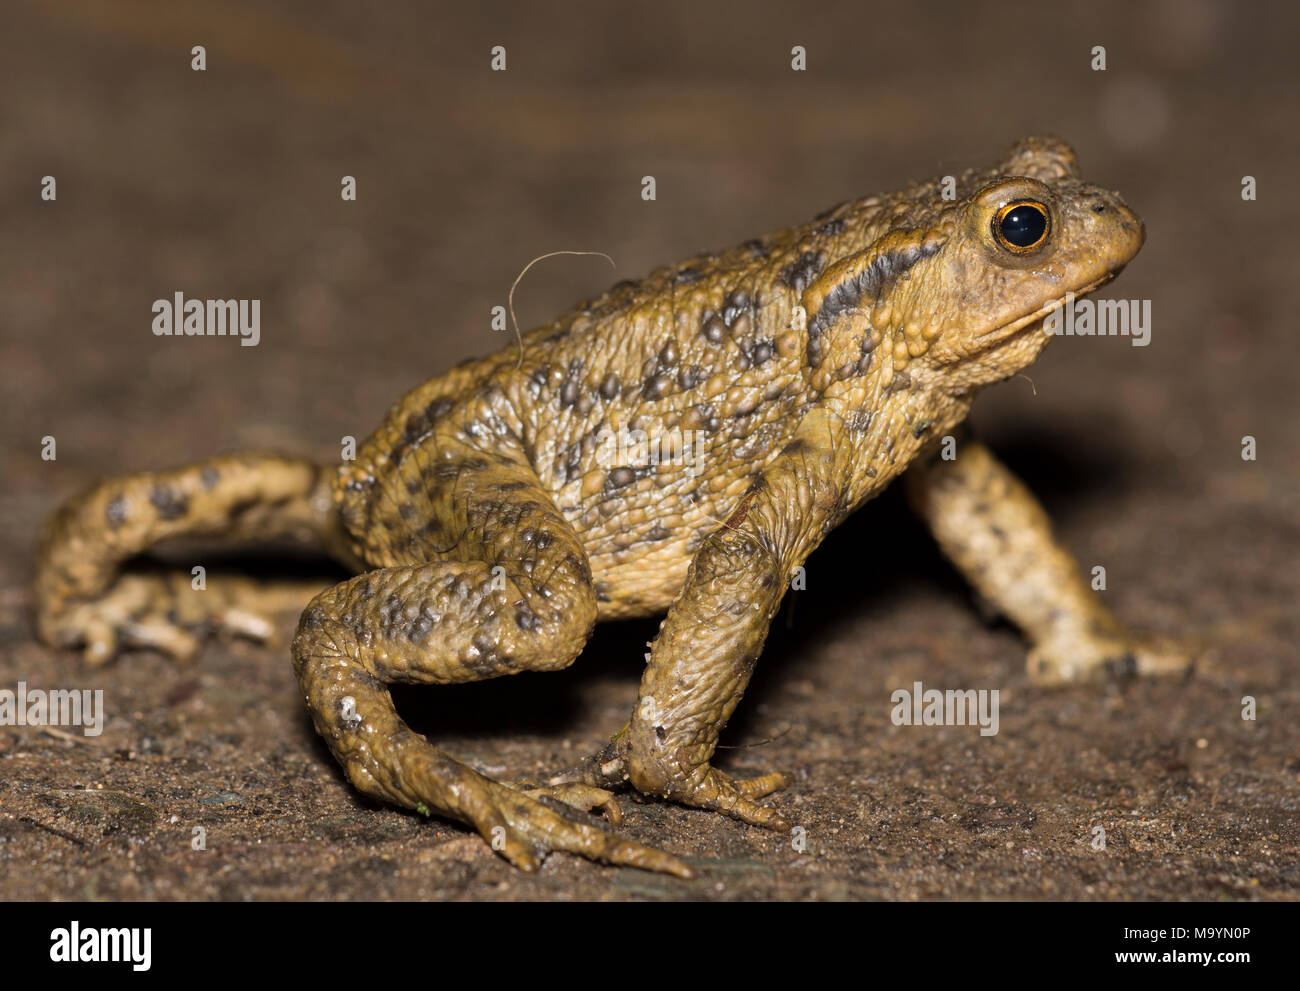 Male European Common Toad (Bufo bufo) on the crawl on a rainy night in Yorkshire Northern England. Stock Photo